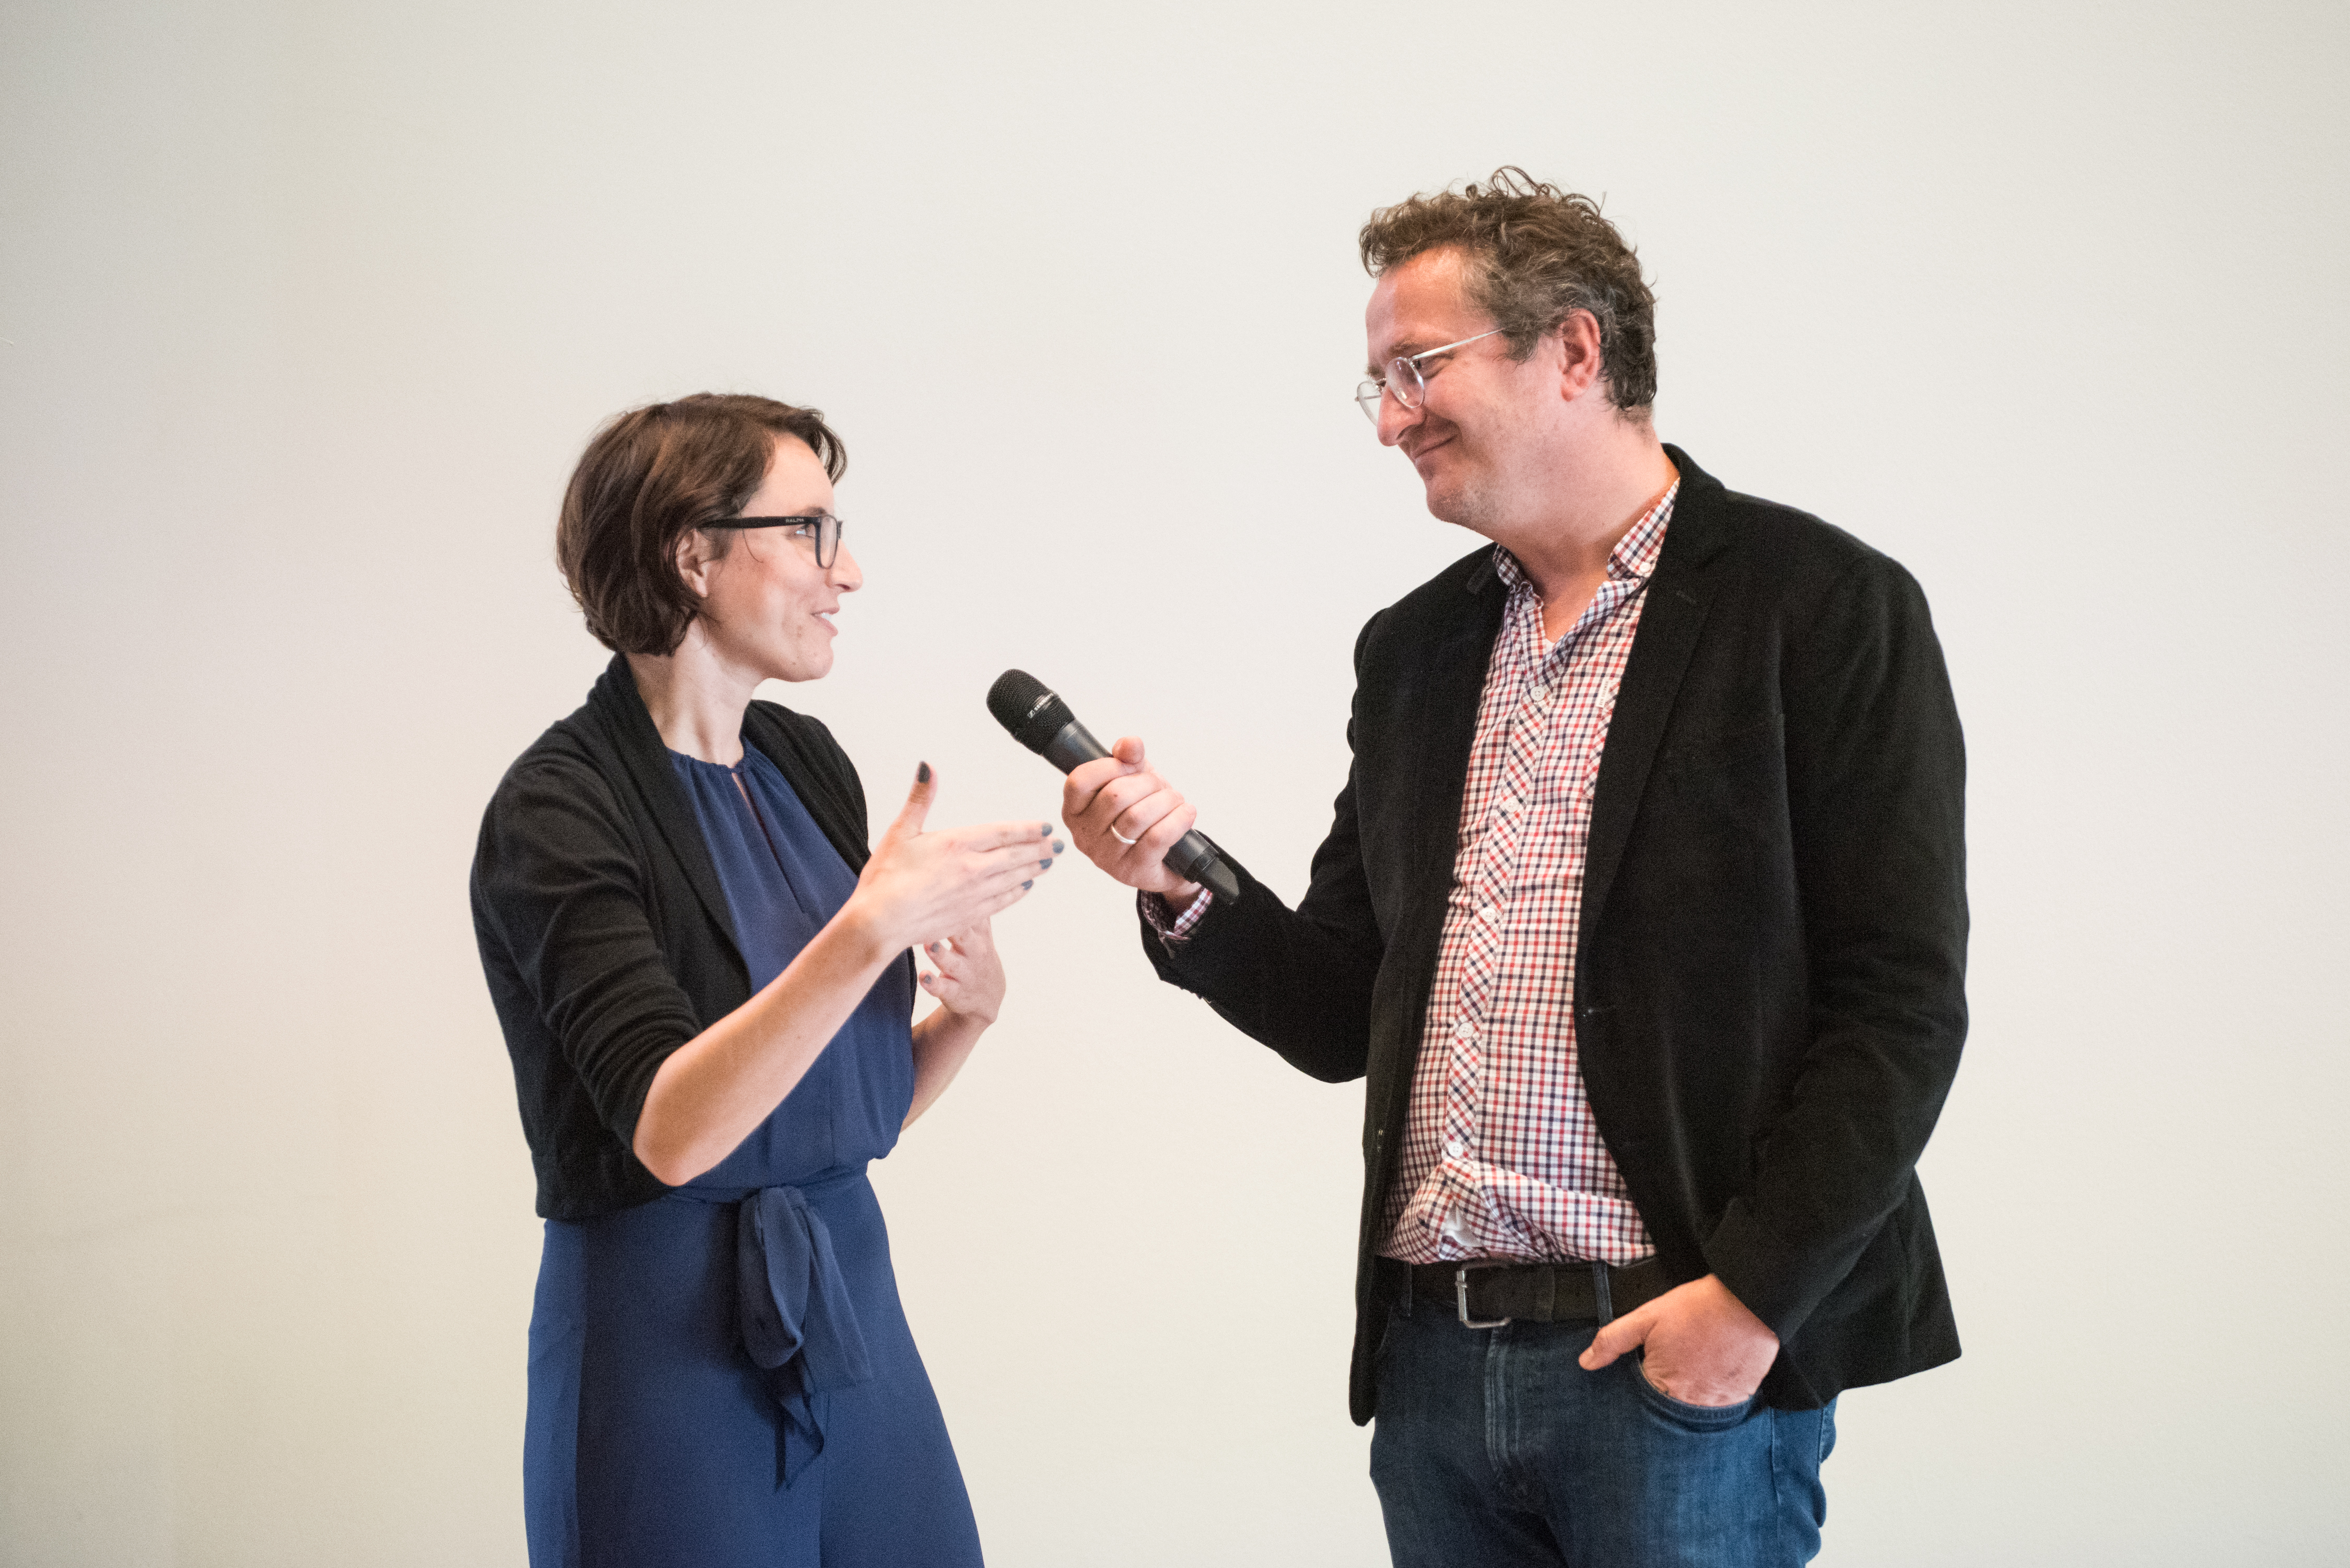 Bart Rutten interviewt Eva Spierenburg